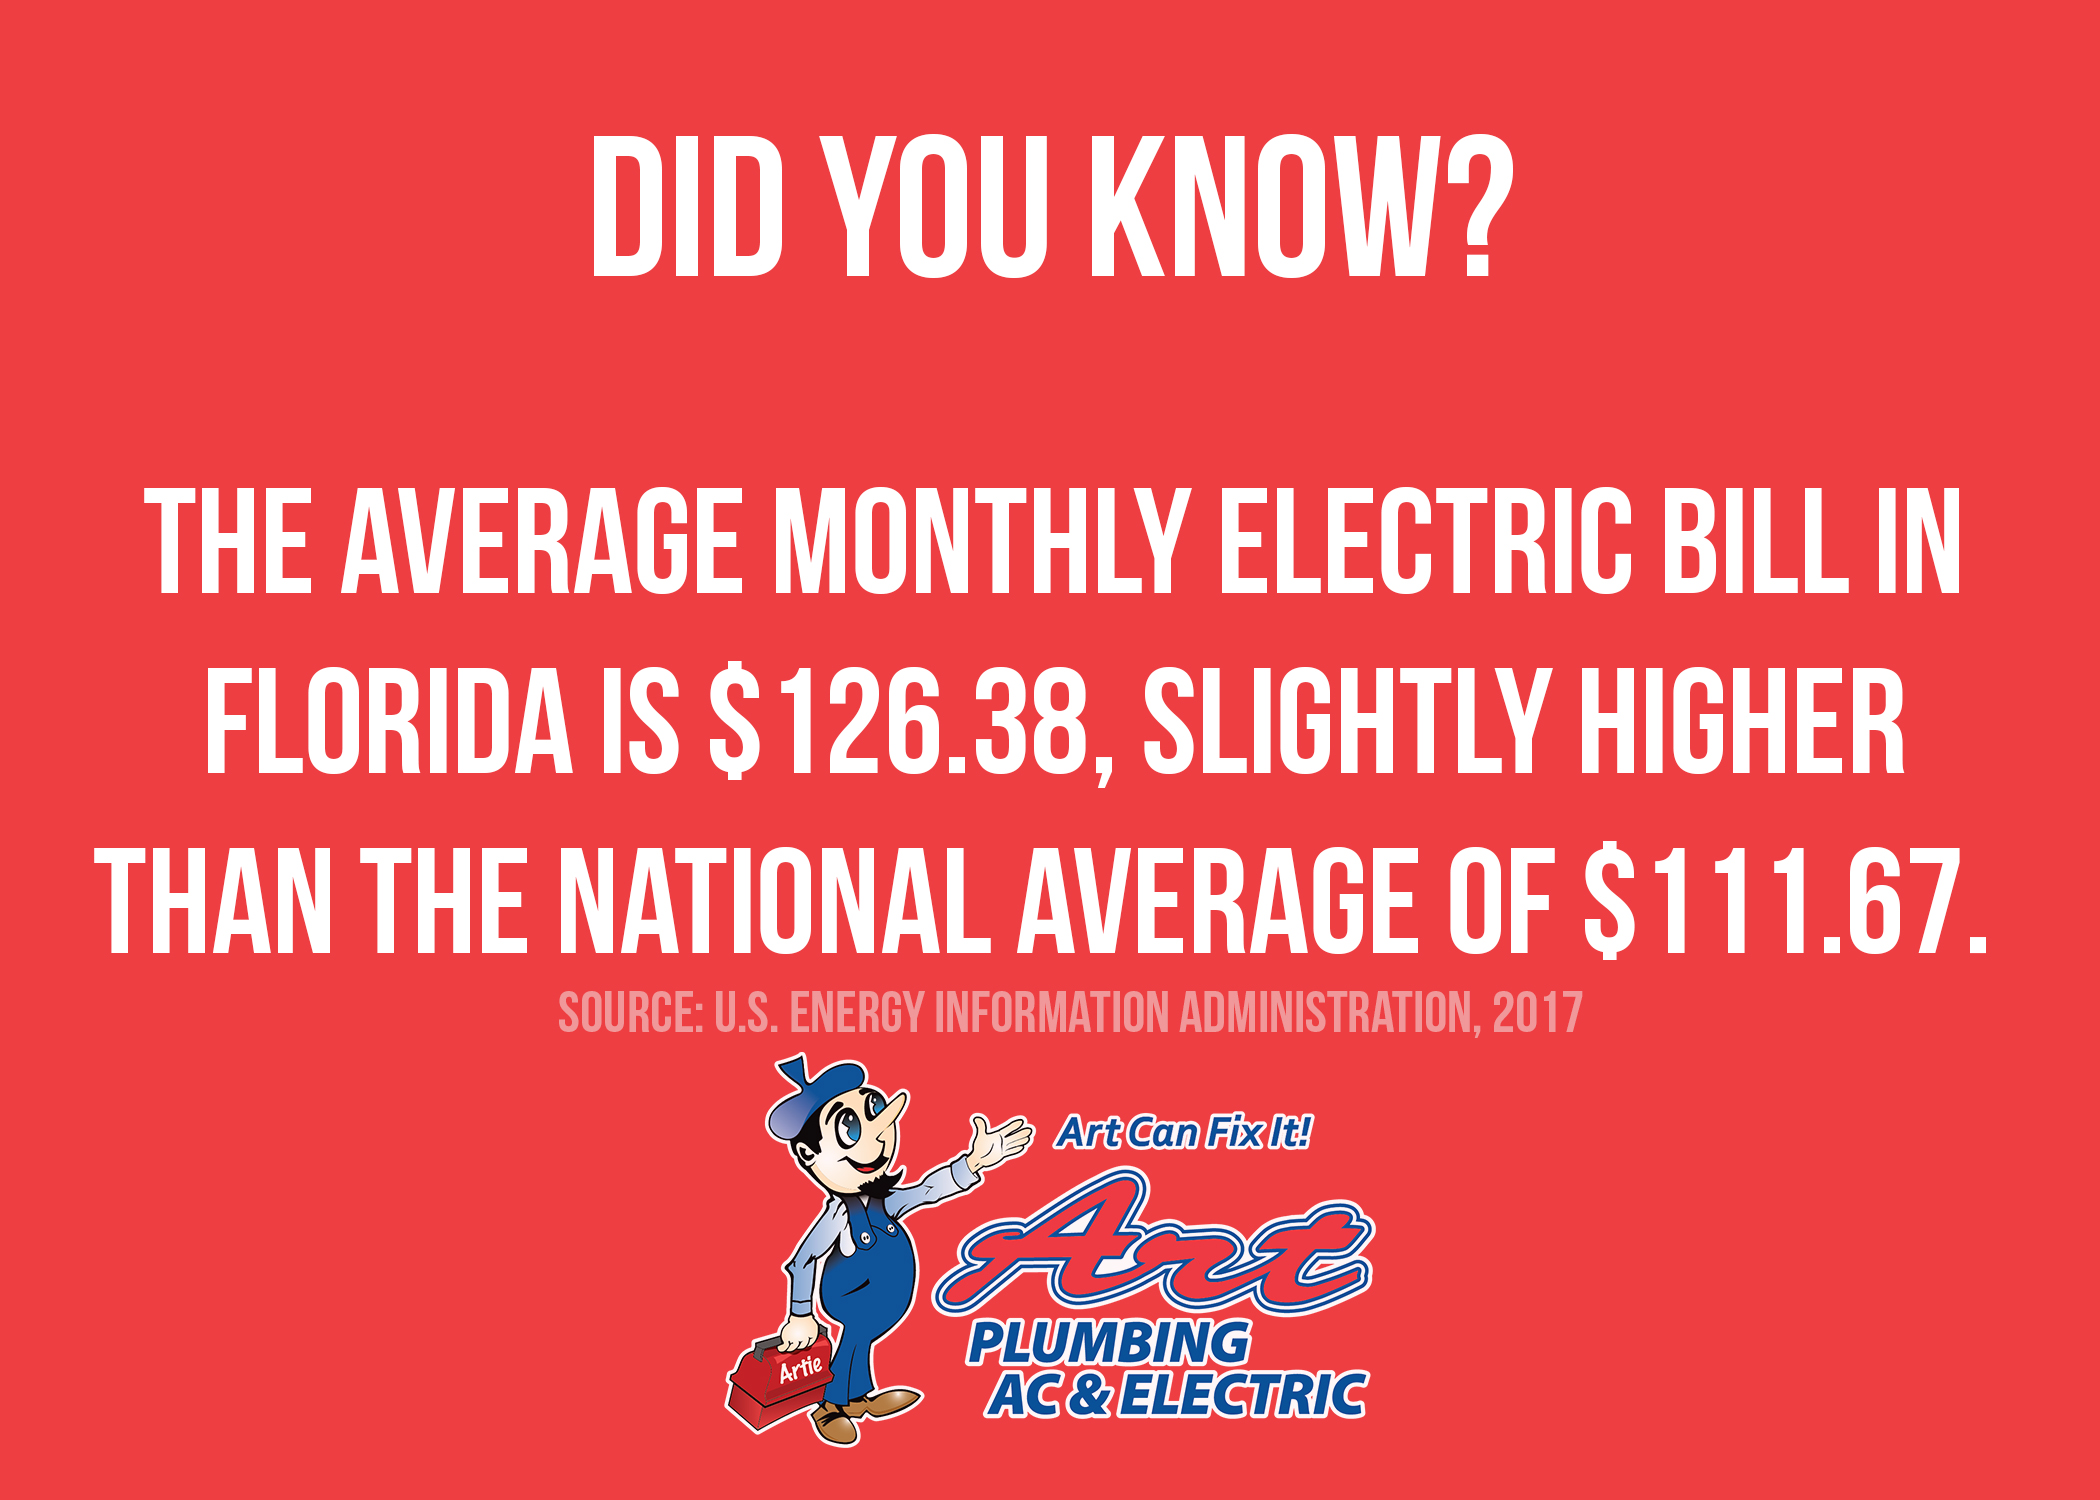 Did You Know The Average Monthly Electric Bill In Florida